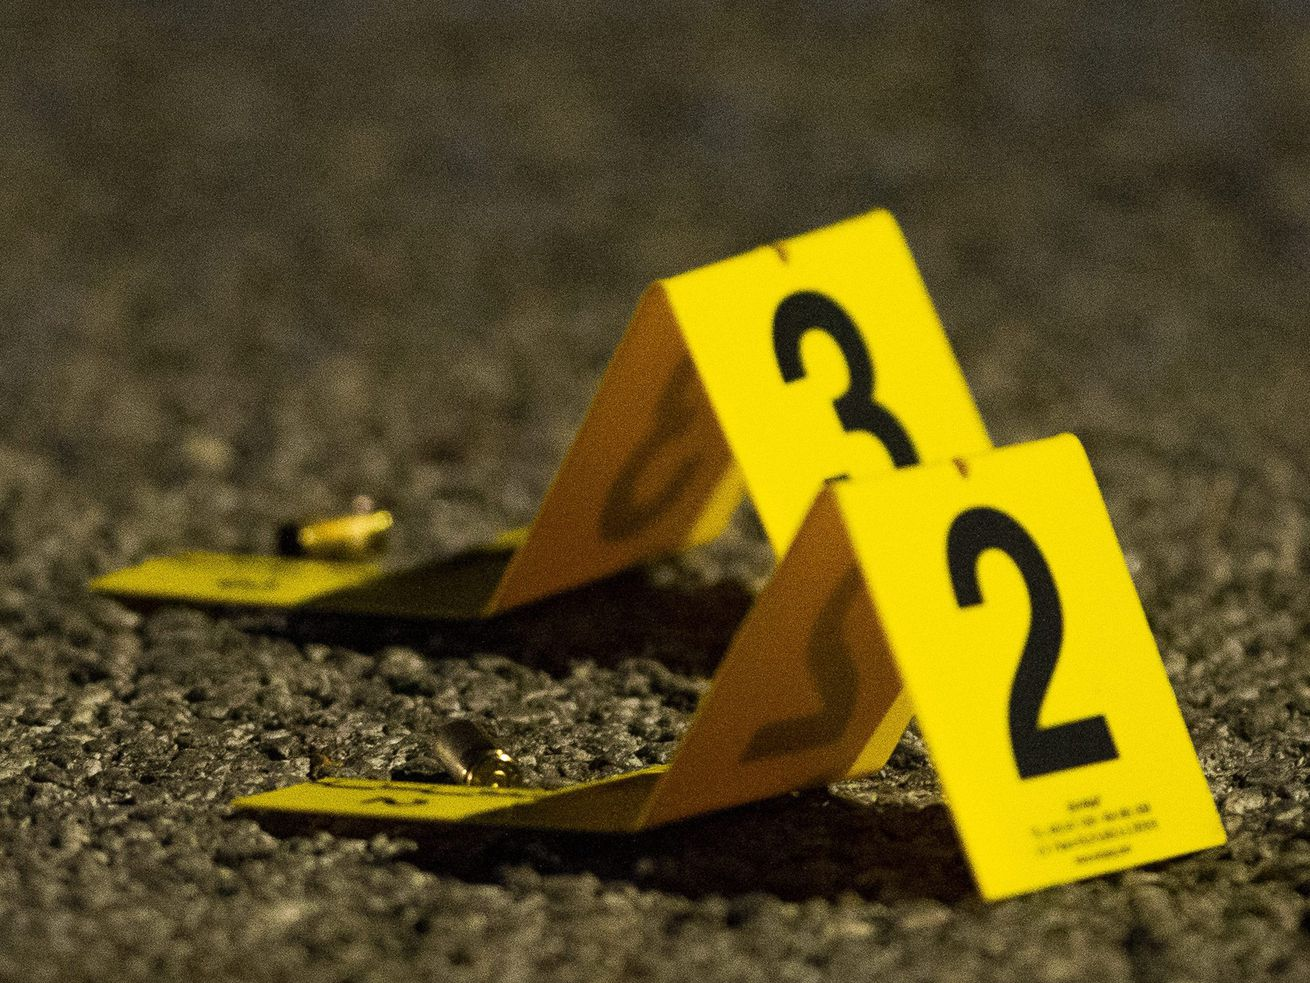 A man was killed in a shooting Aug. 27, 2020, in the 100 block of North Keeler Avenue.